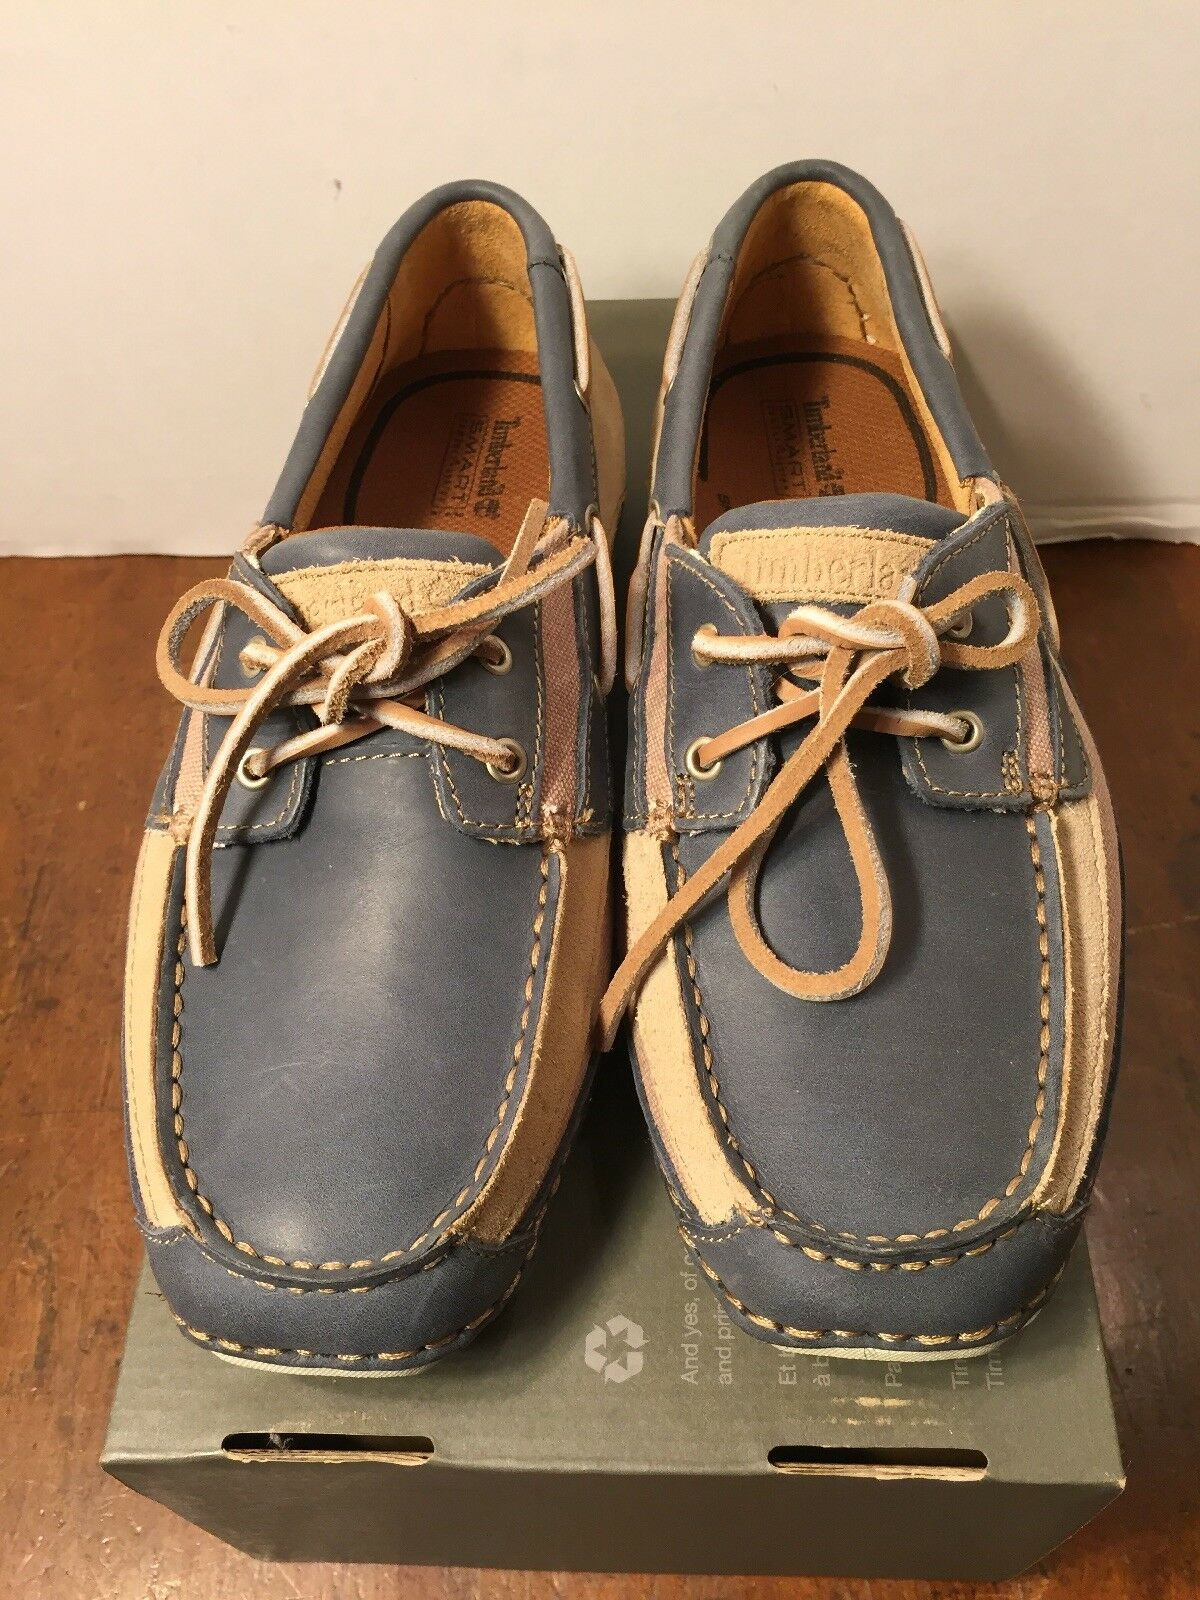 NEW Timberland Annapolis Boat Shoes/Moccasins Men's Sz 8 M 74090 Suede Leather